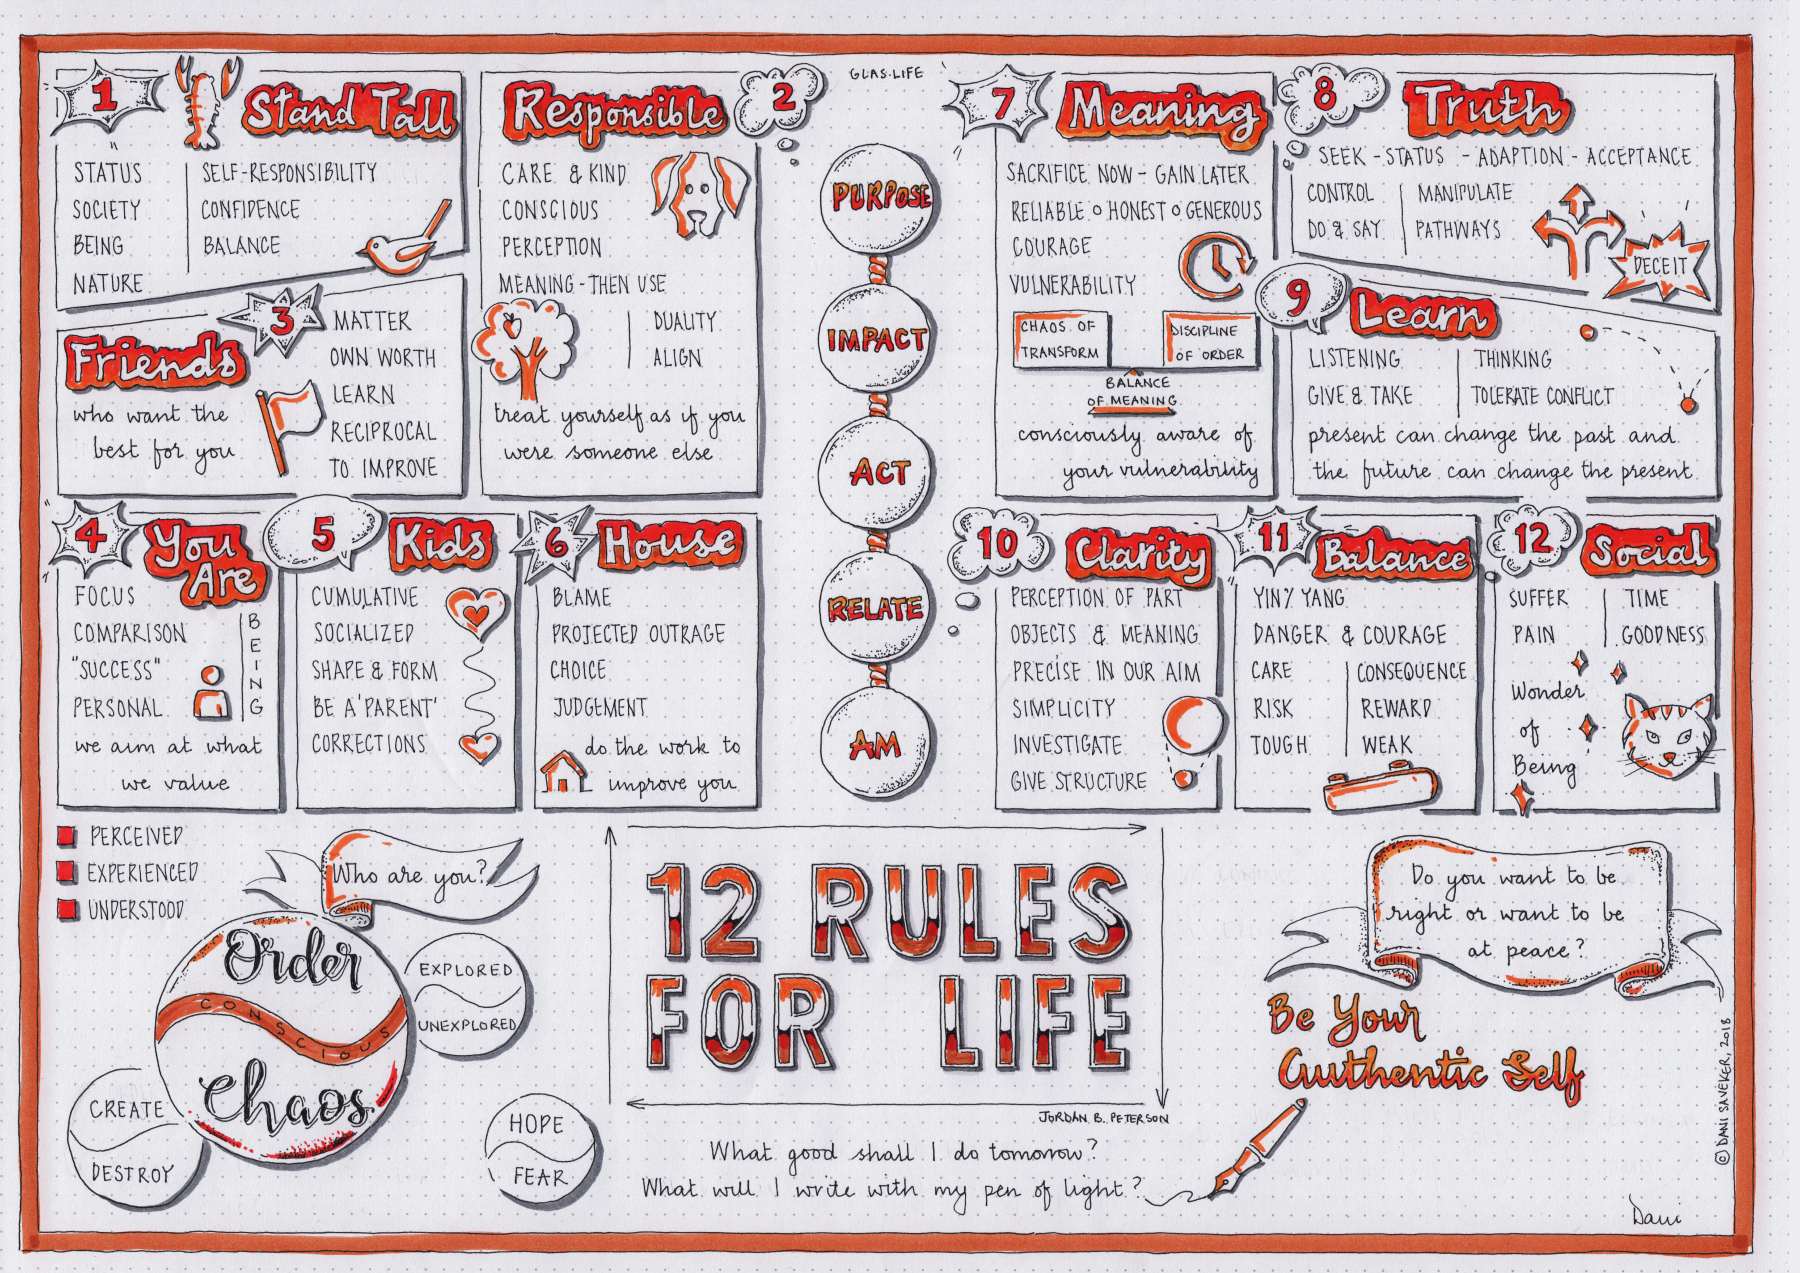 12 Rules for Life (Jordan Peterson)